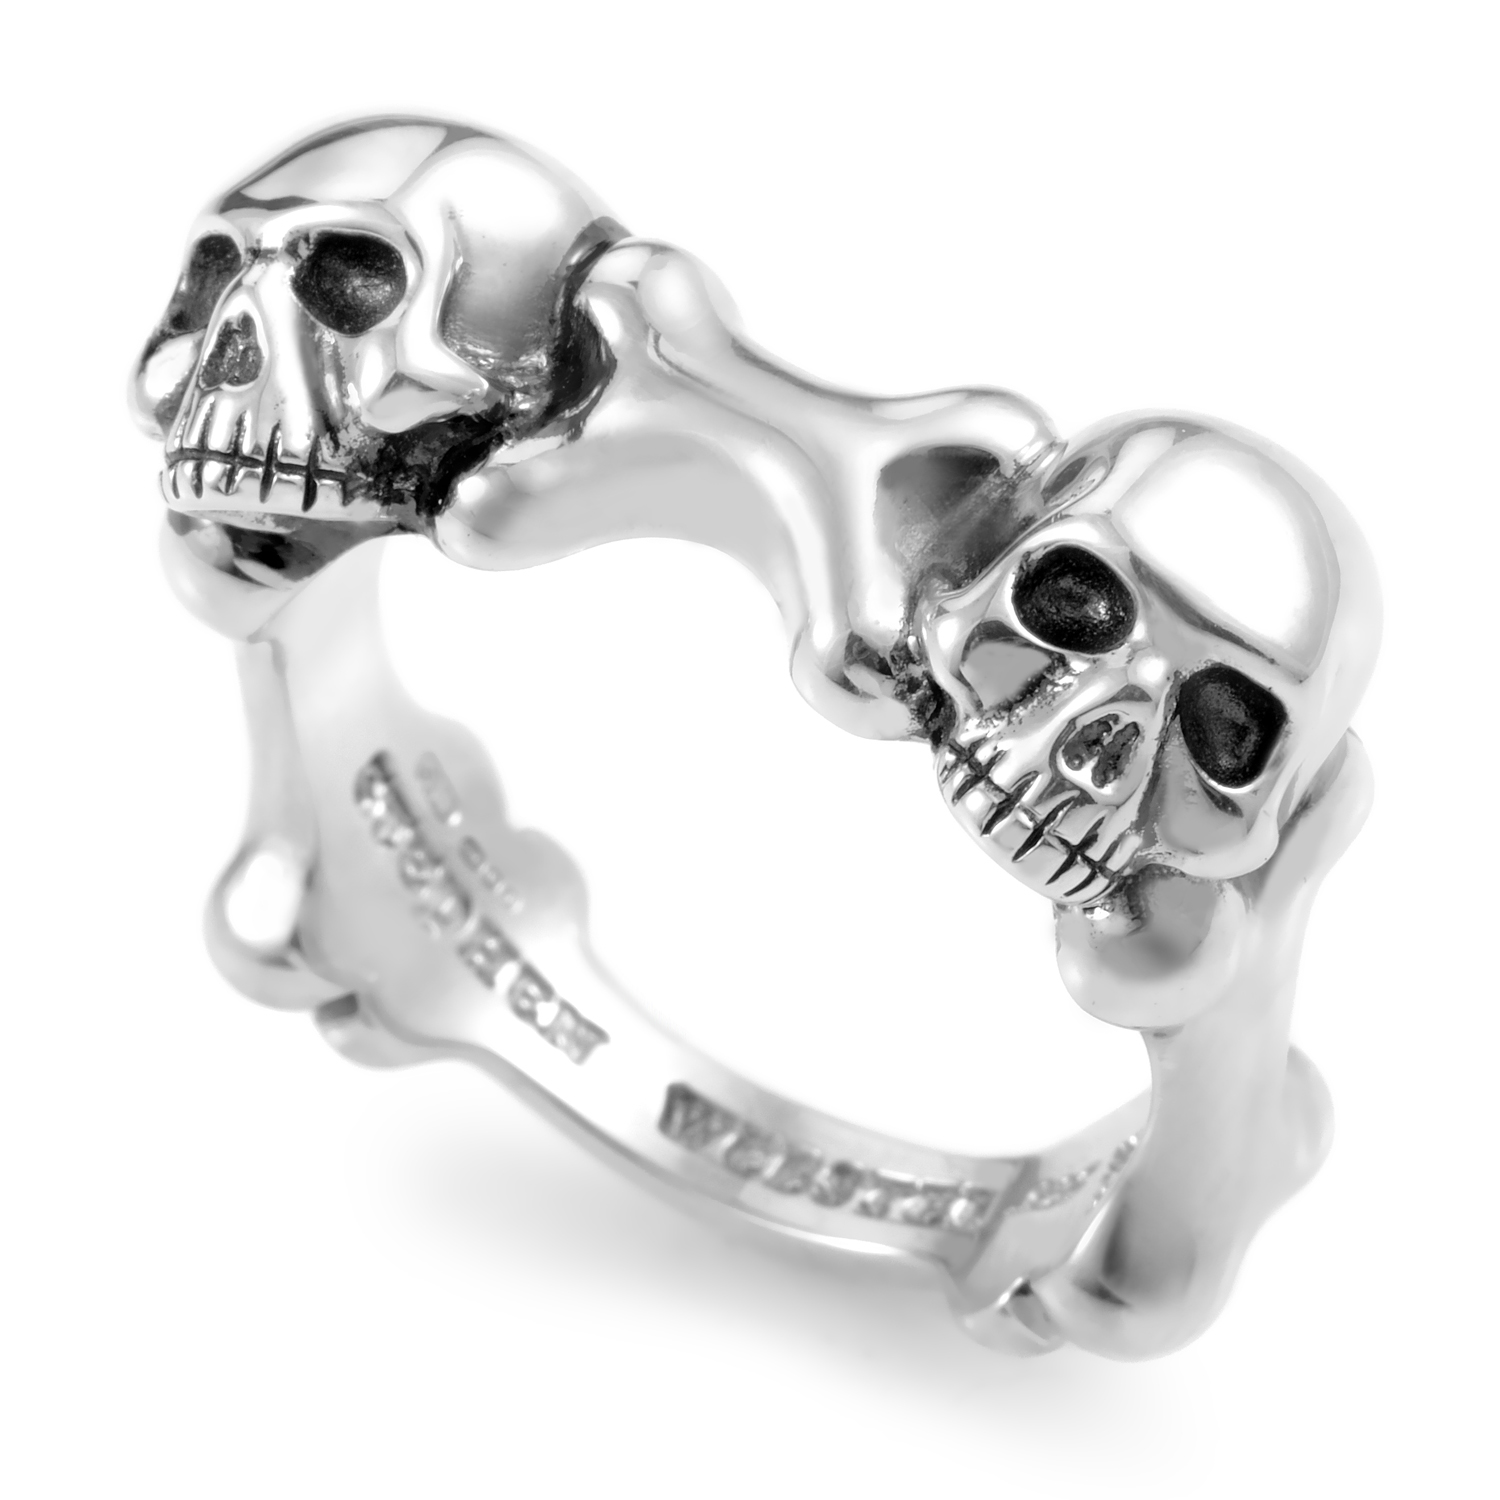 Skull and Bones Men's Sterling Silver Band Ring 3008674